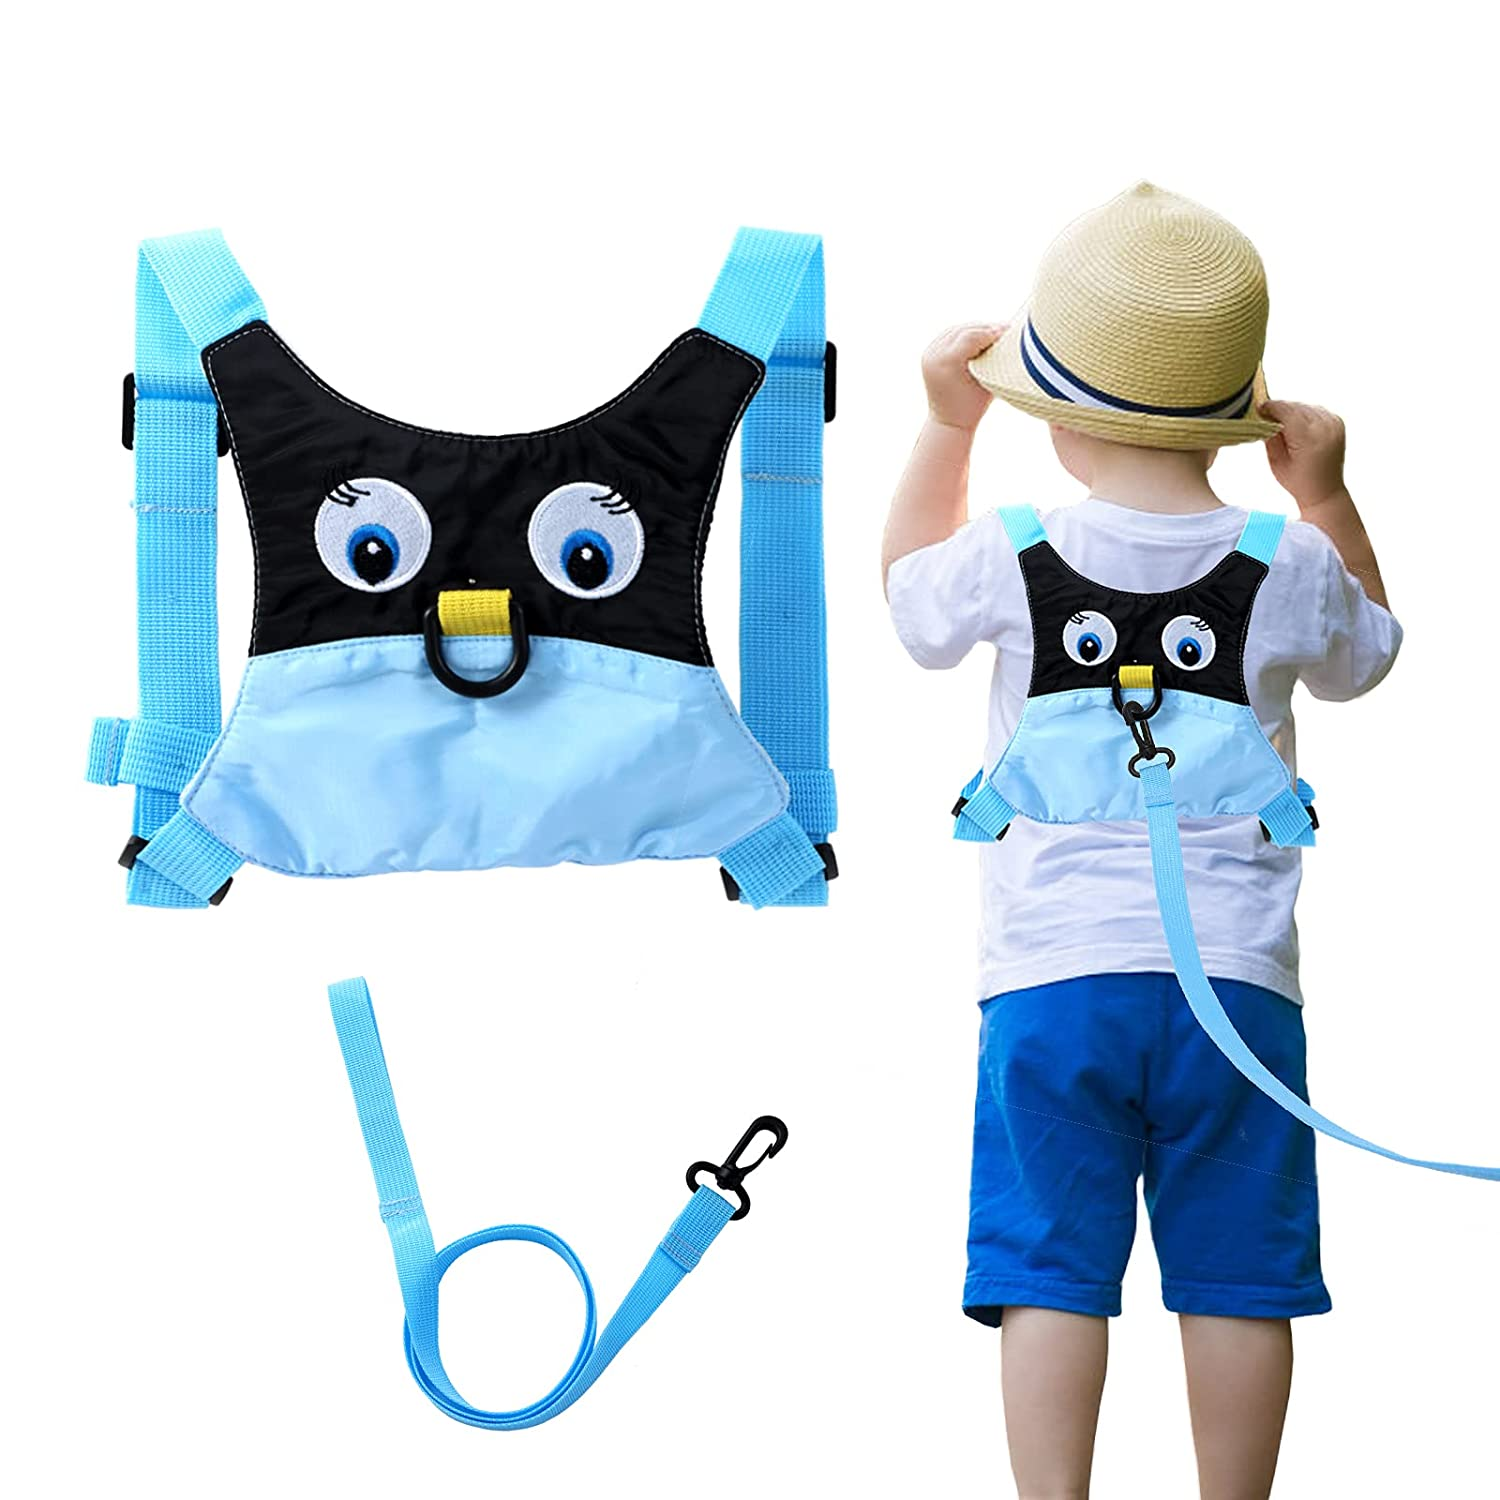 Baby Anti Lost Safety Walking Harness Toddler Safety Leash for Babies & Kids Boys and Girls(Blue)